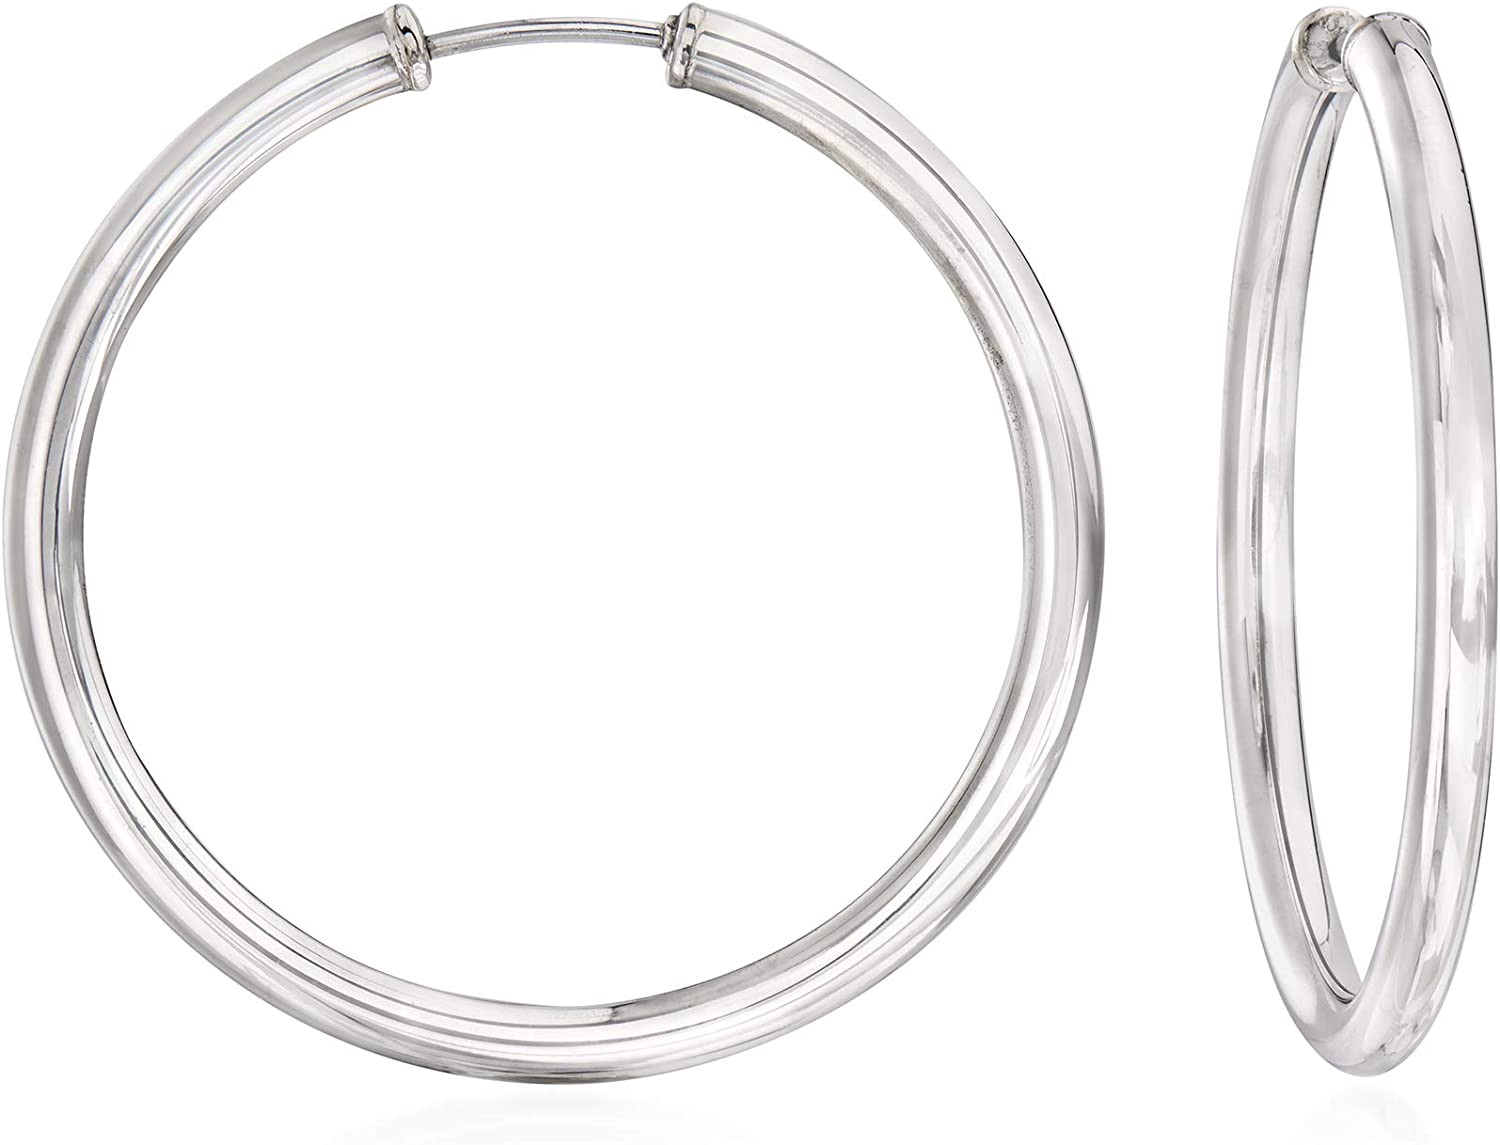 Max 65% OFF Ross-Simons Sterling Challenge the lowest price of Japan ☆ Silver Medium Earrings Endless Hoop